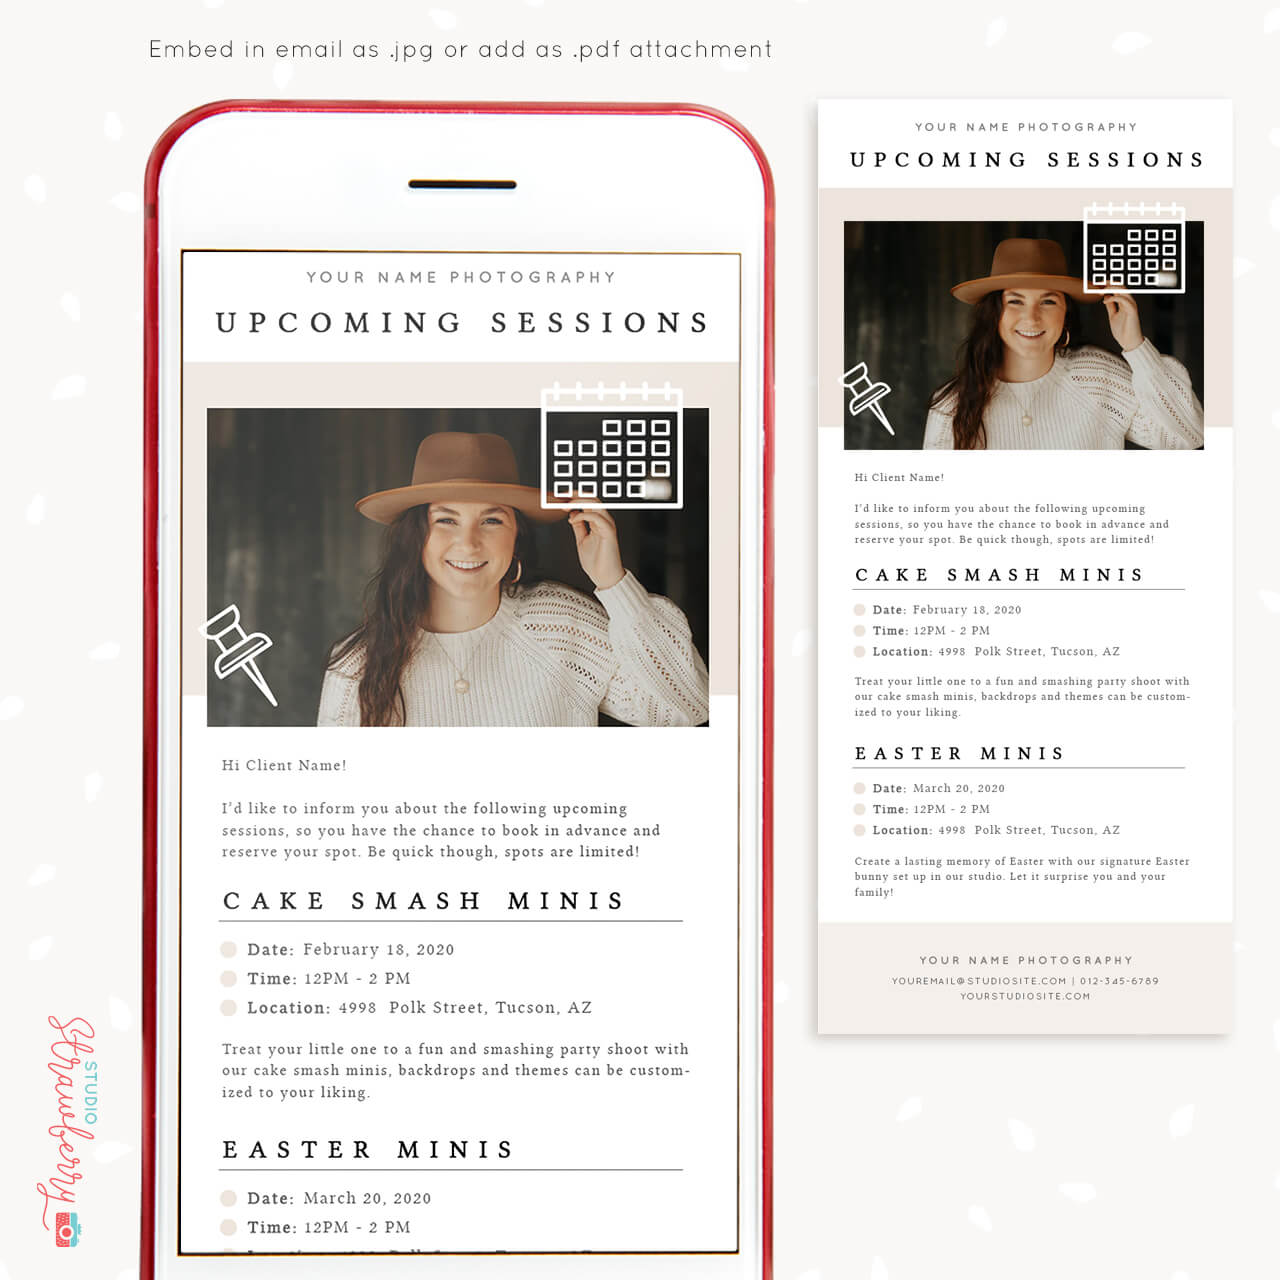 Upcoming sessions email template